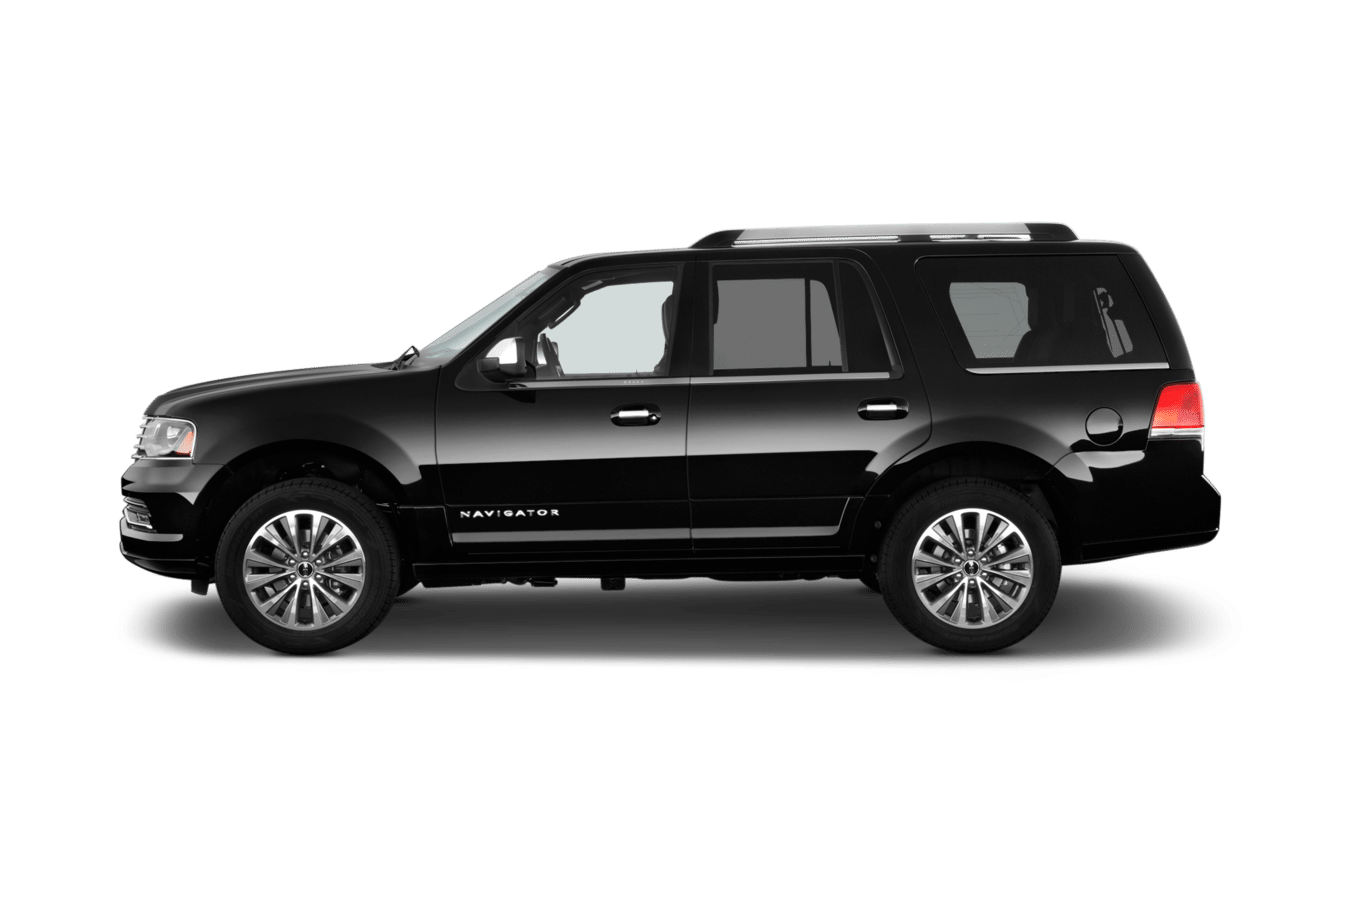 Navigator SUV luxury private transportation on Kauai